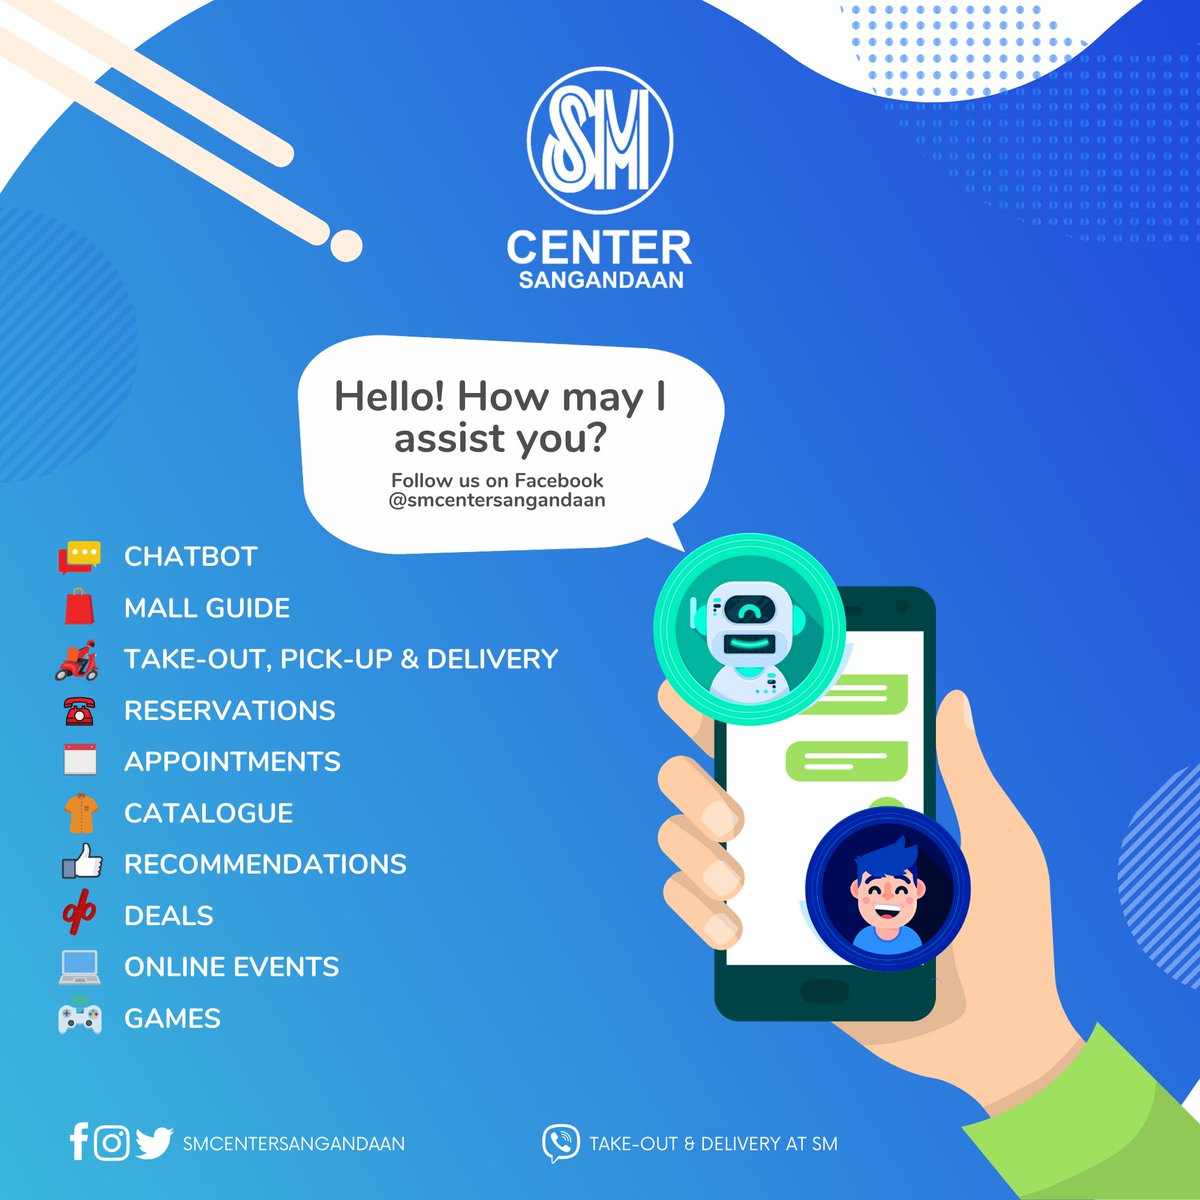 Say hello to fun shopping at SM Center Sangandaan! We are glad to assist you from mall guide, take-out & delivery to fun online activities where great deals await you. Like and follow https://t.co/cF6SsbzFG9 https://t.co/pRb8UX9aJJ